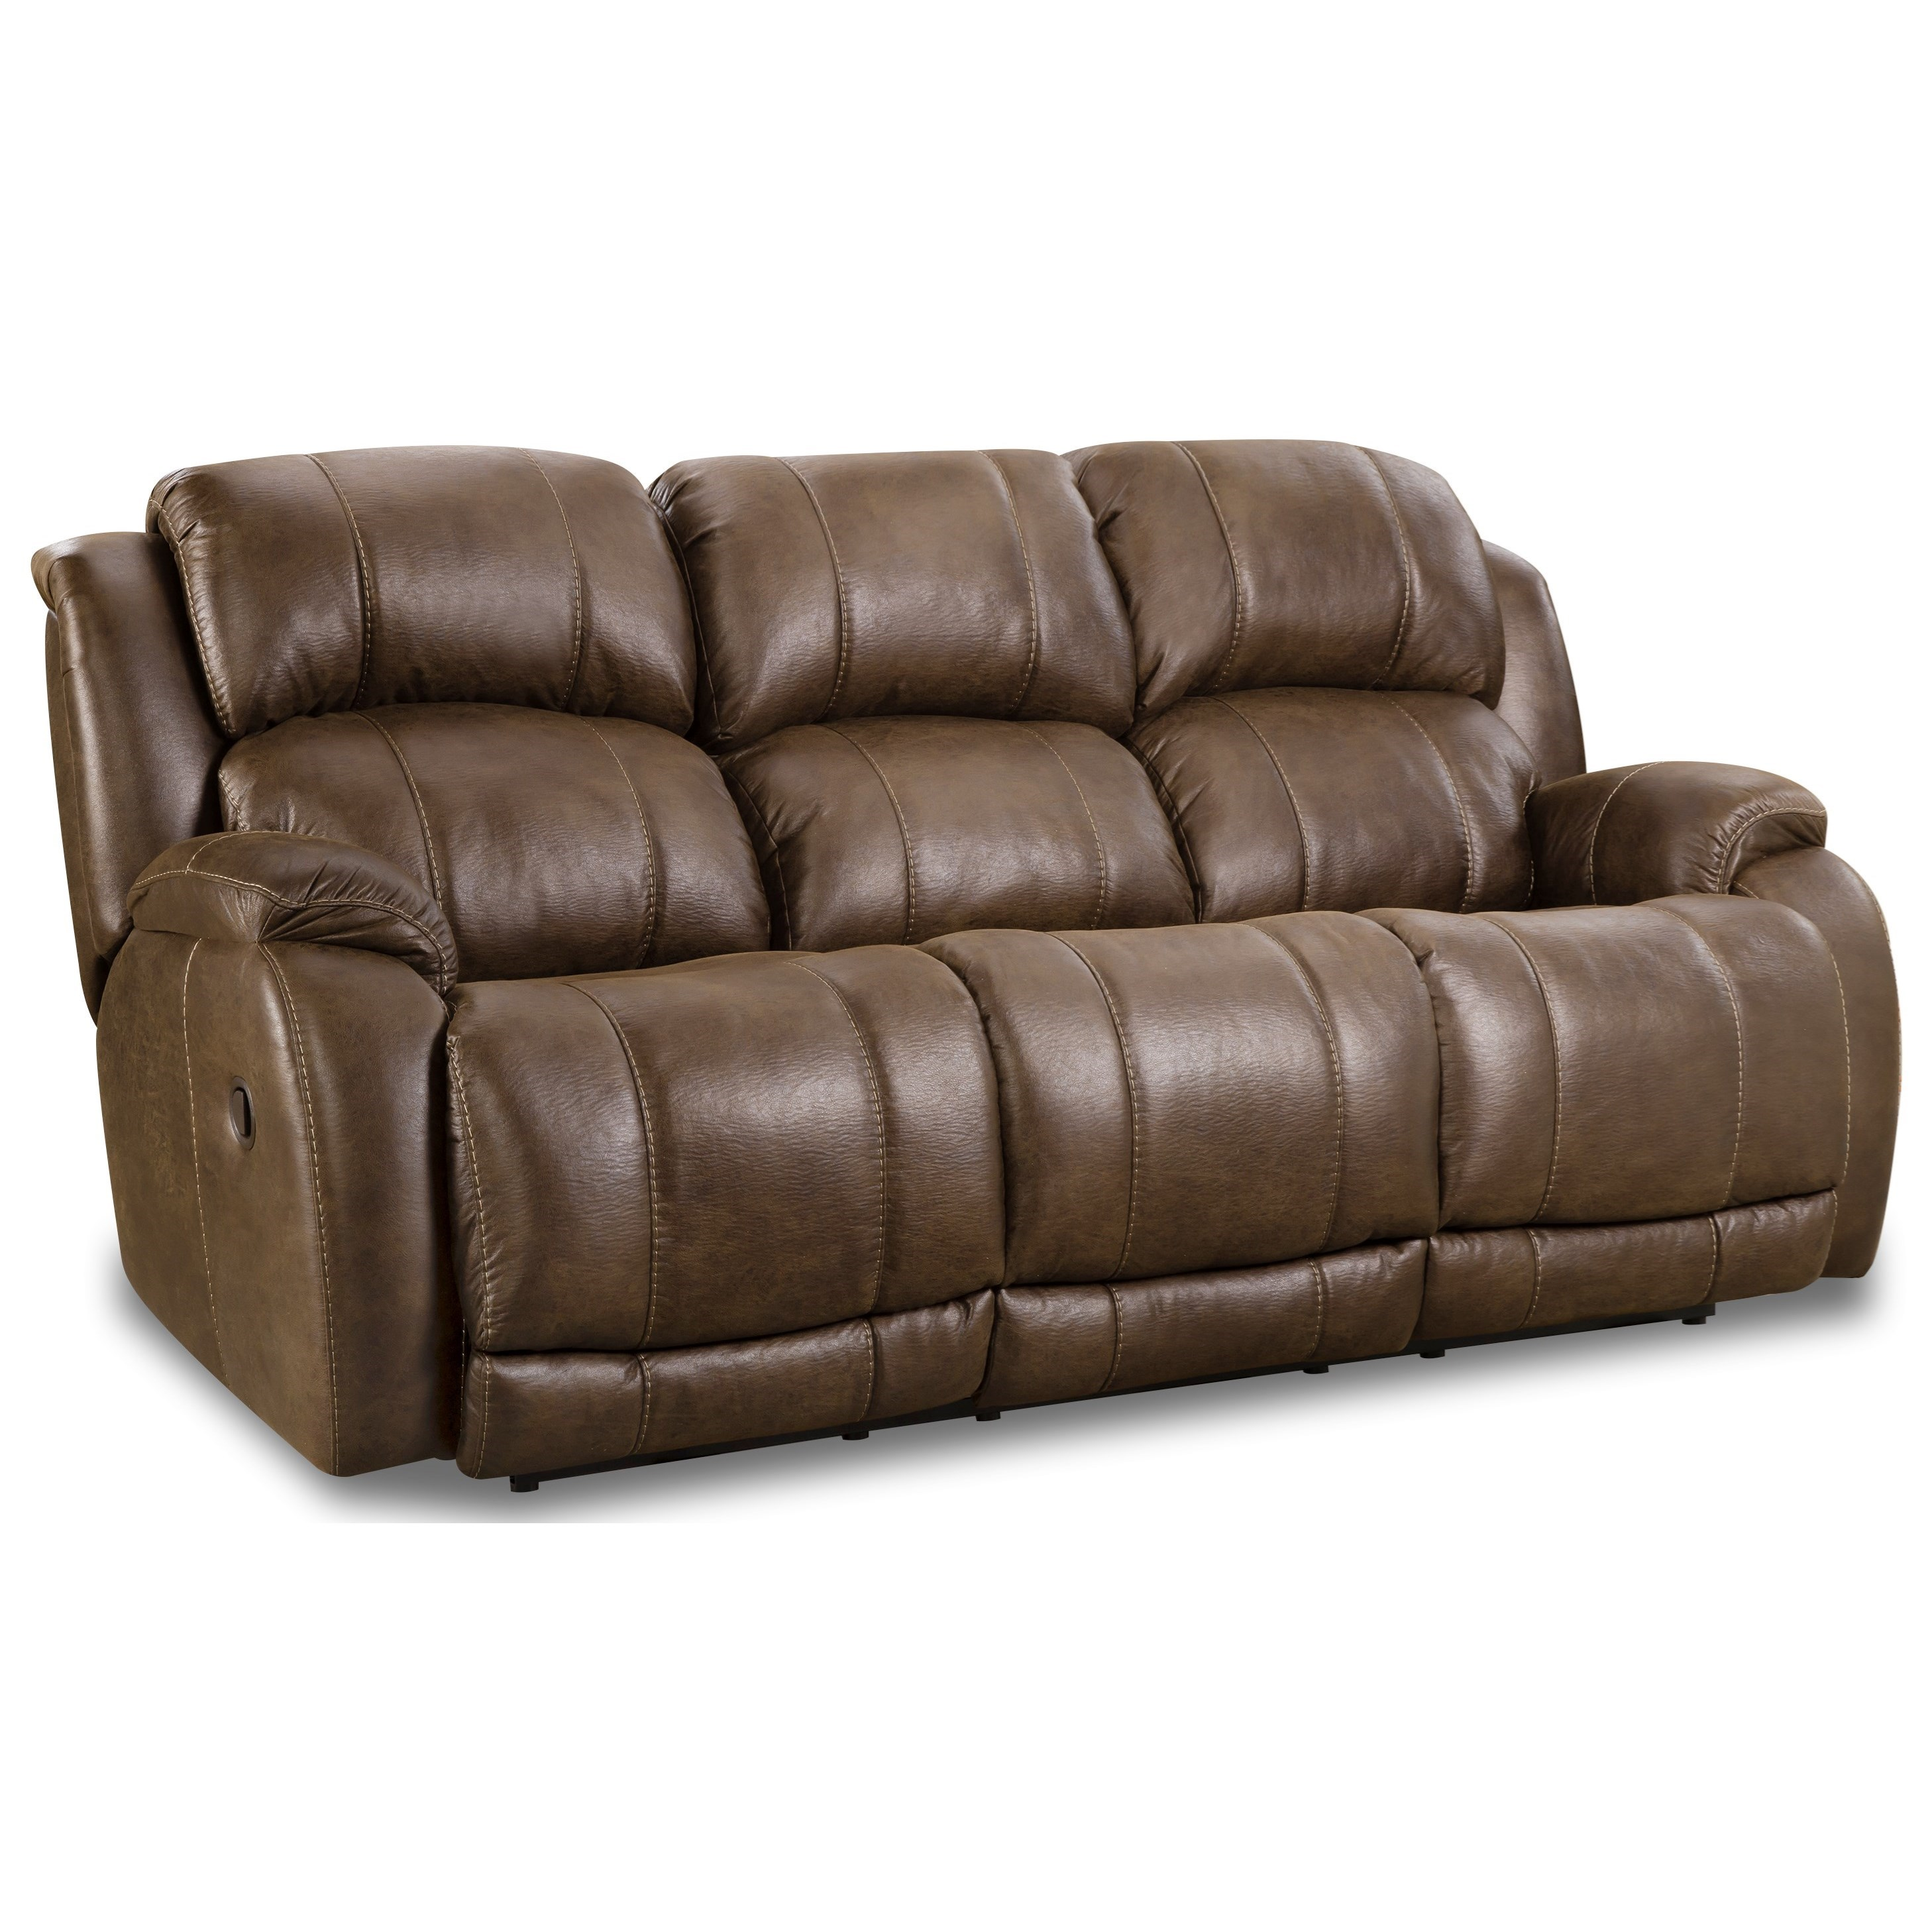 Denali Dual Reclining Sofa by HomeStretch at Story & Lee Furniture